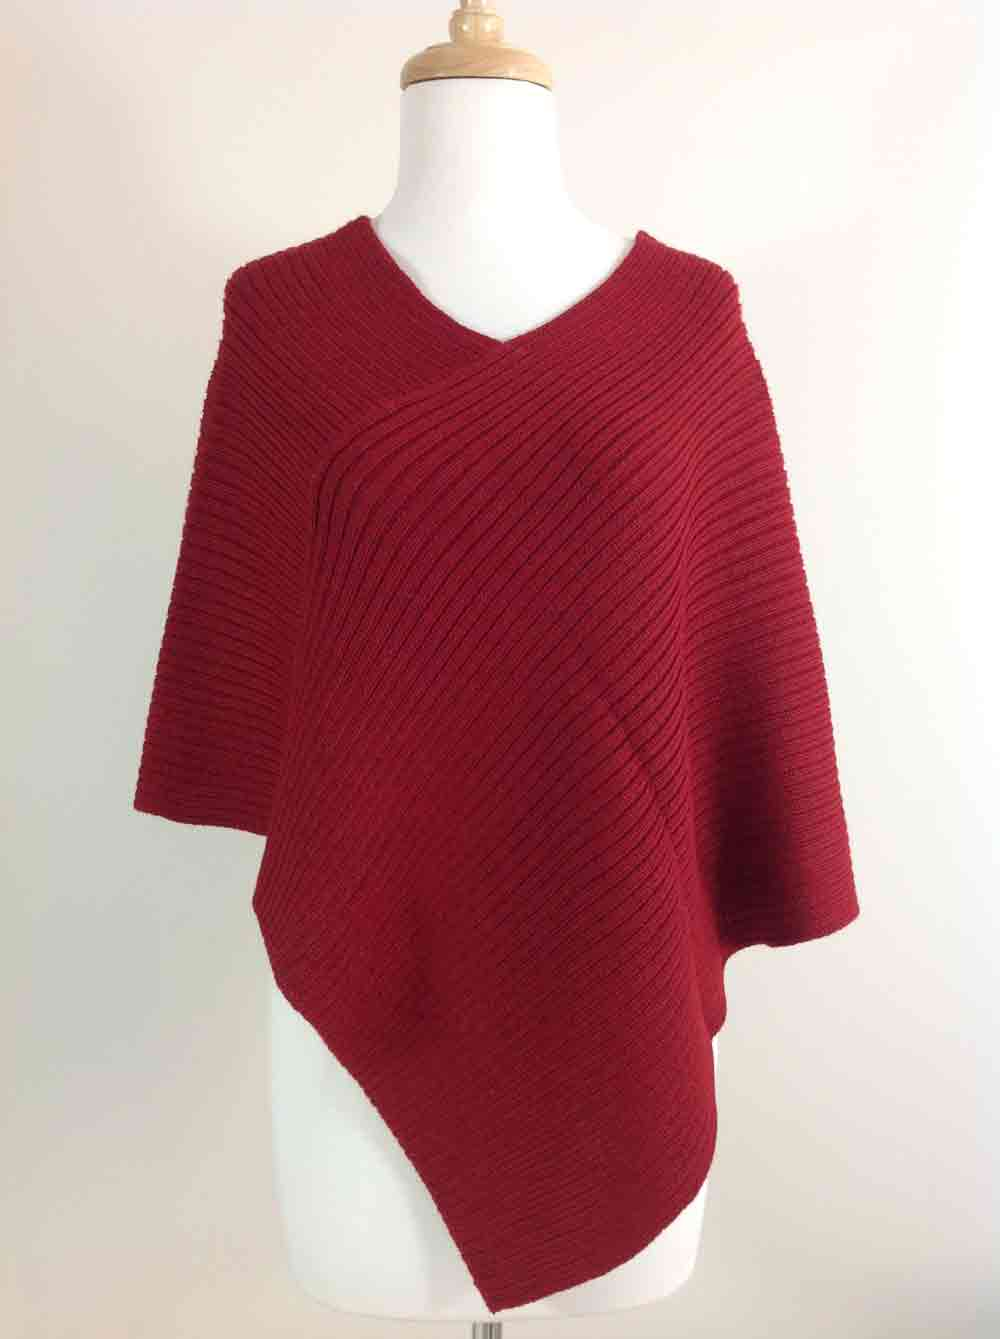 Ribbed Poncho - Cherry Red